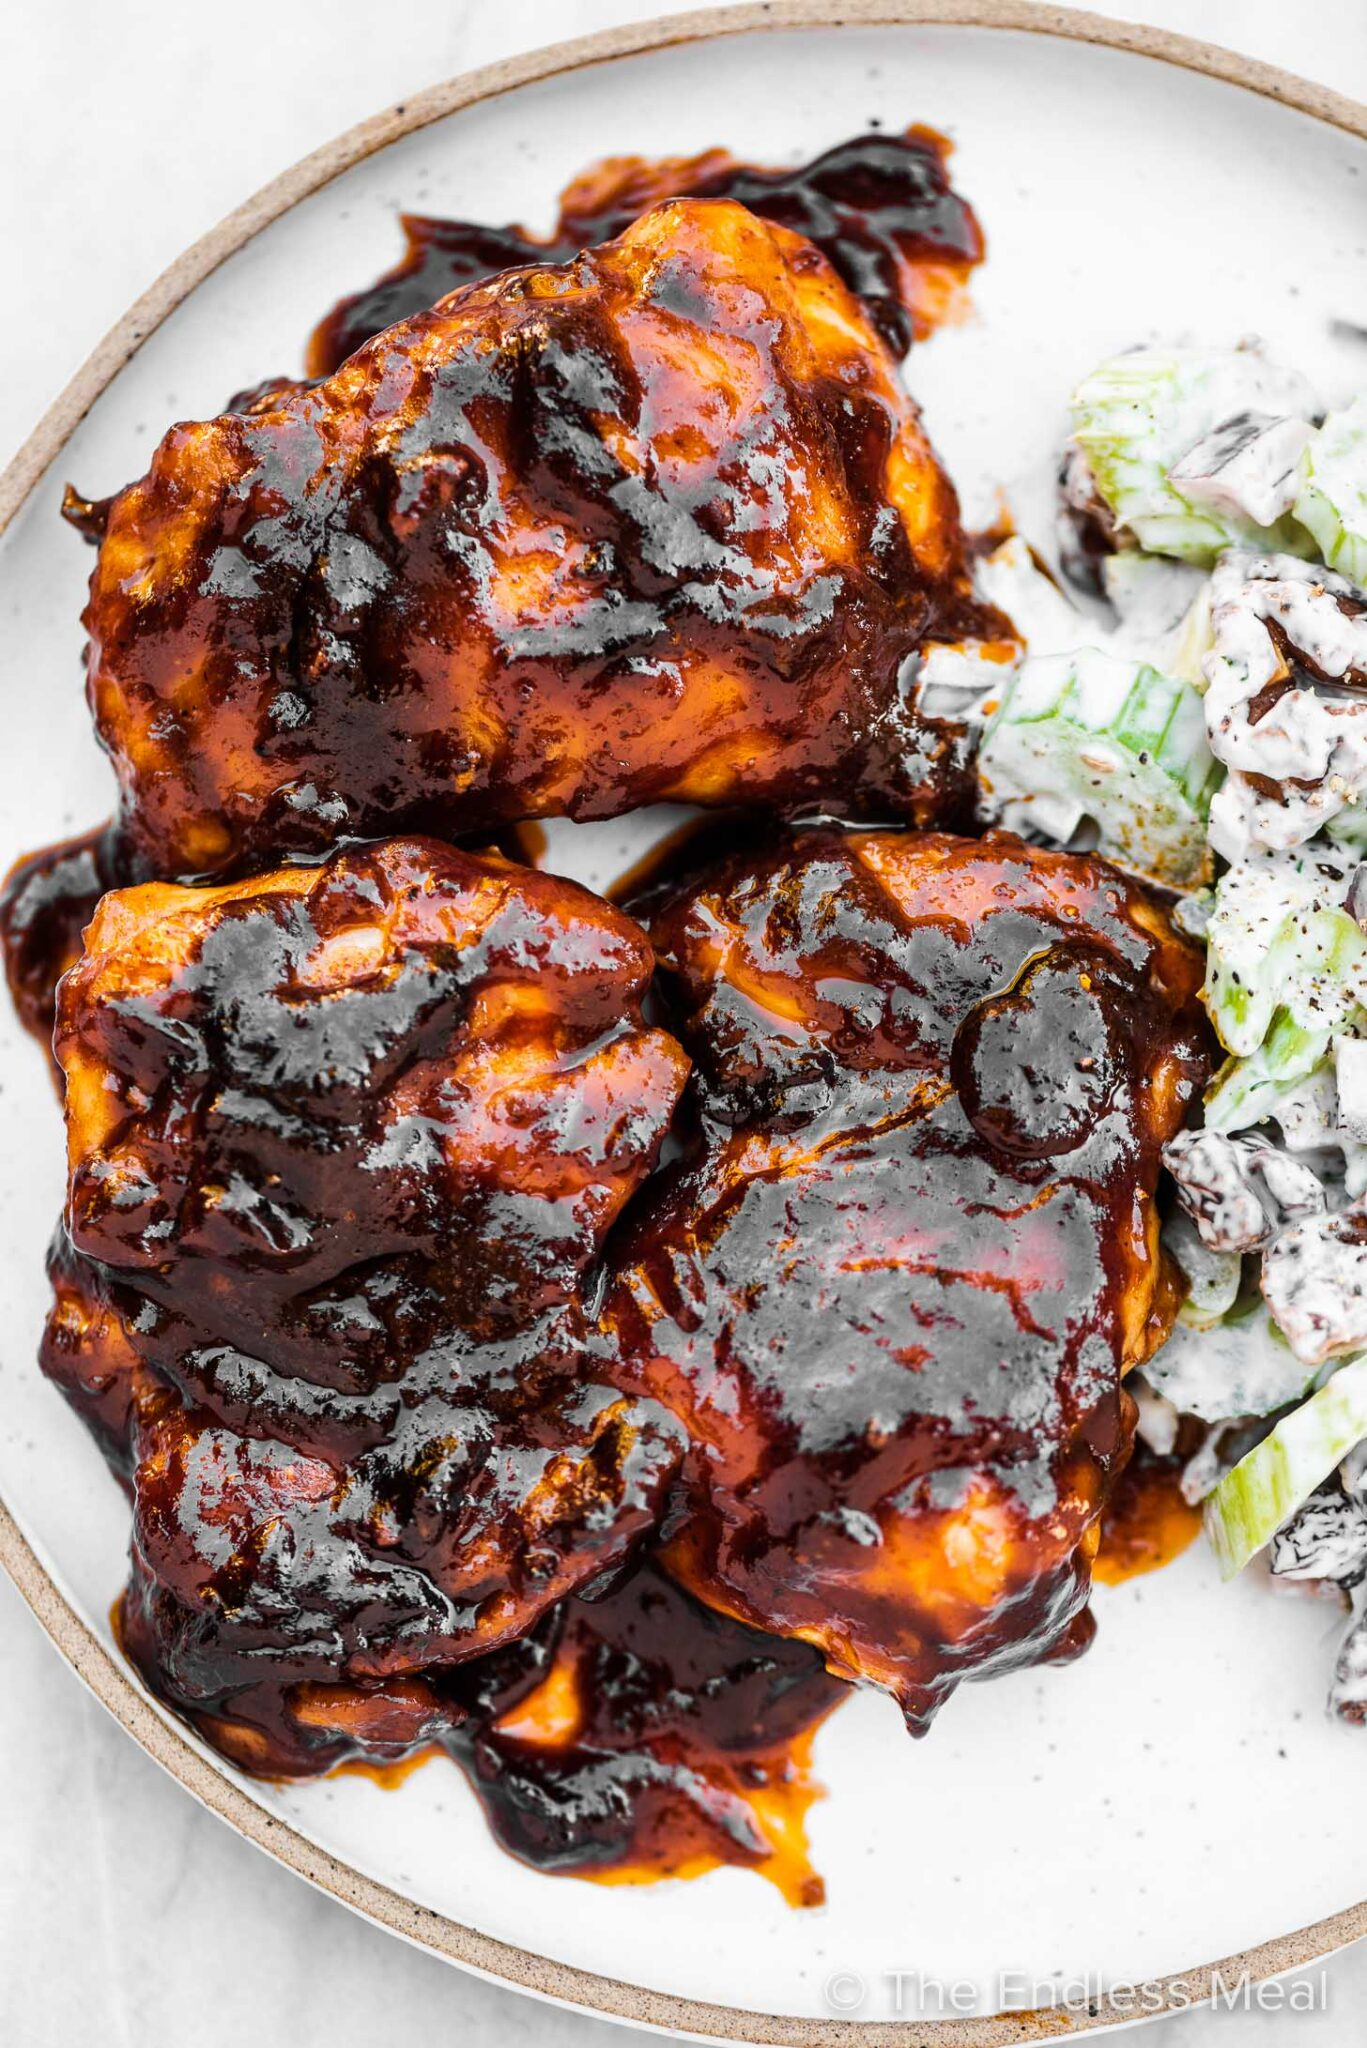 Stovetop BBQ chicken on a plate with celery salad.